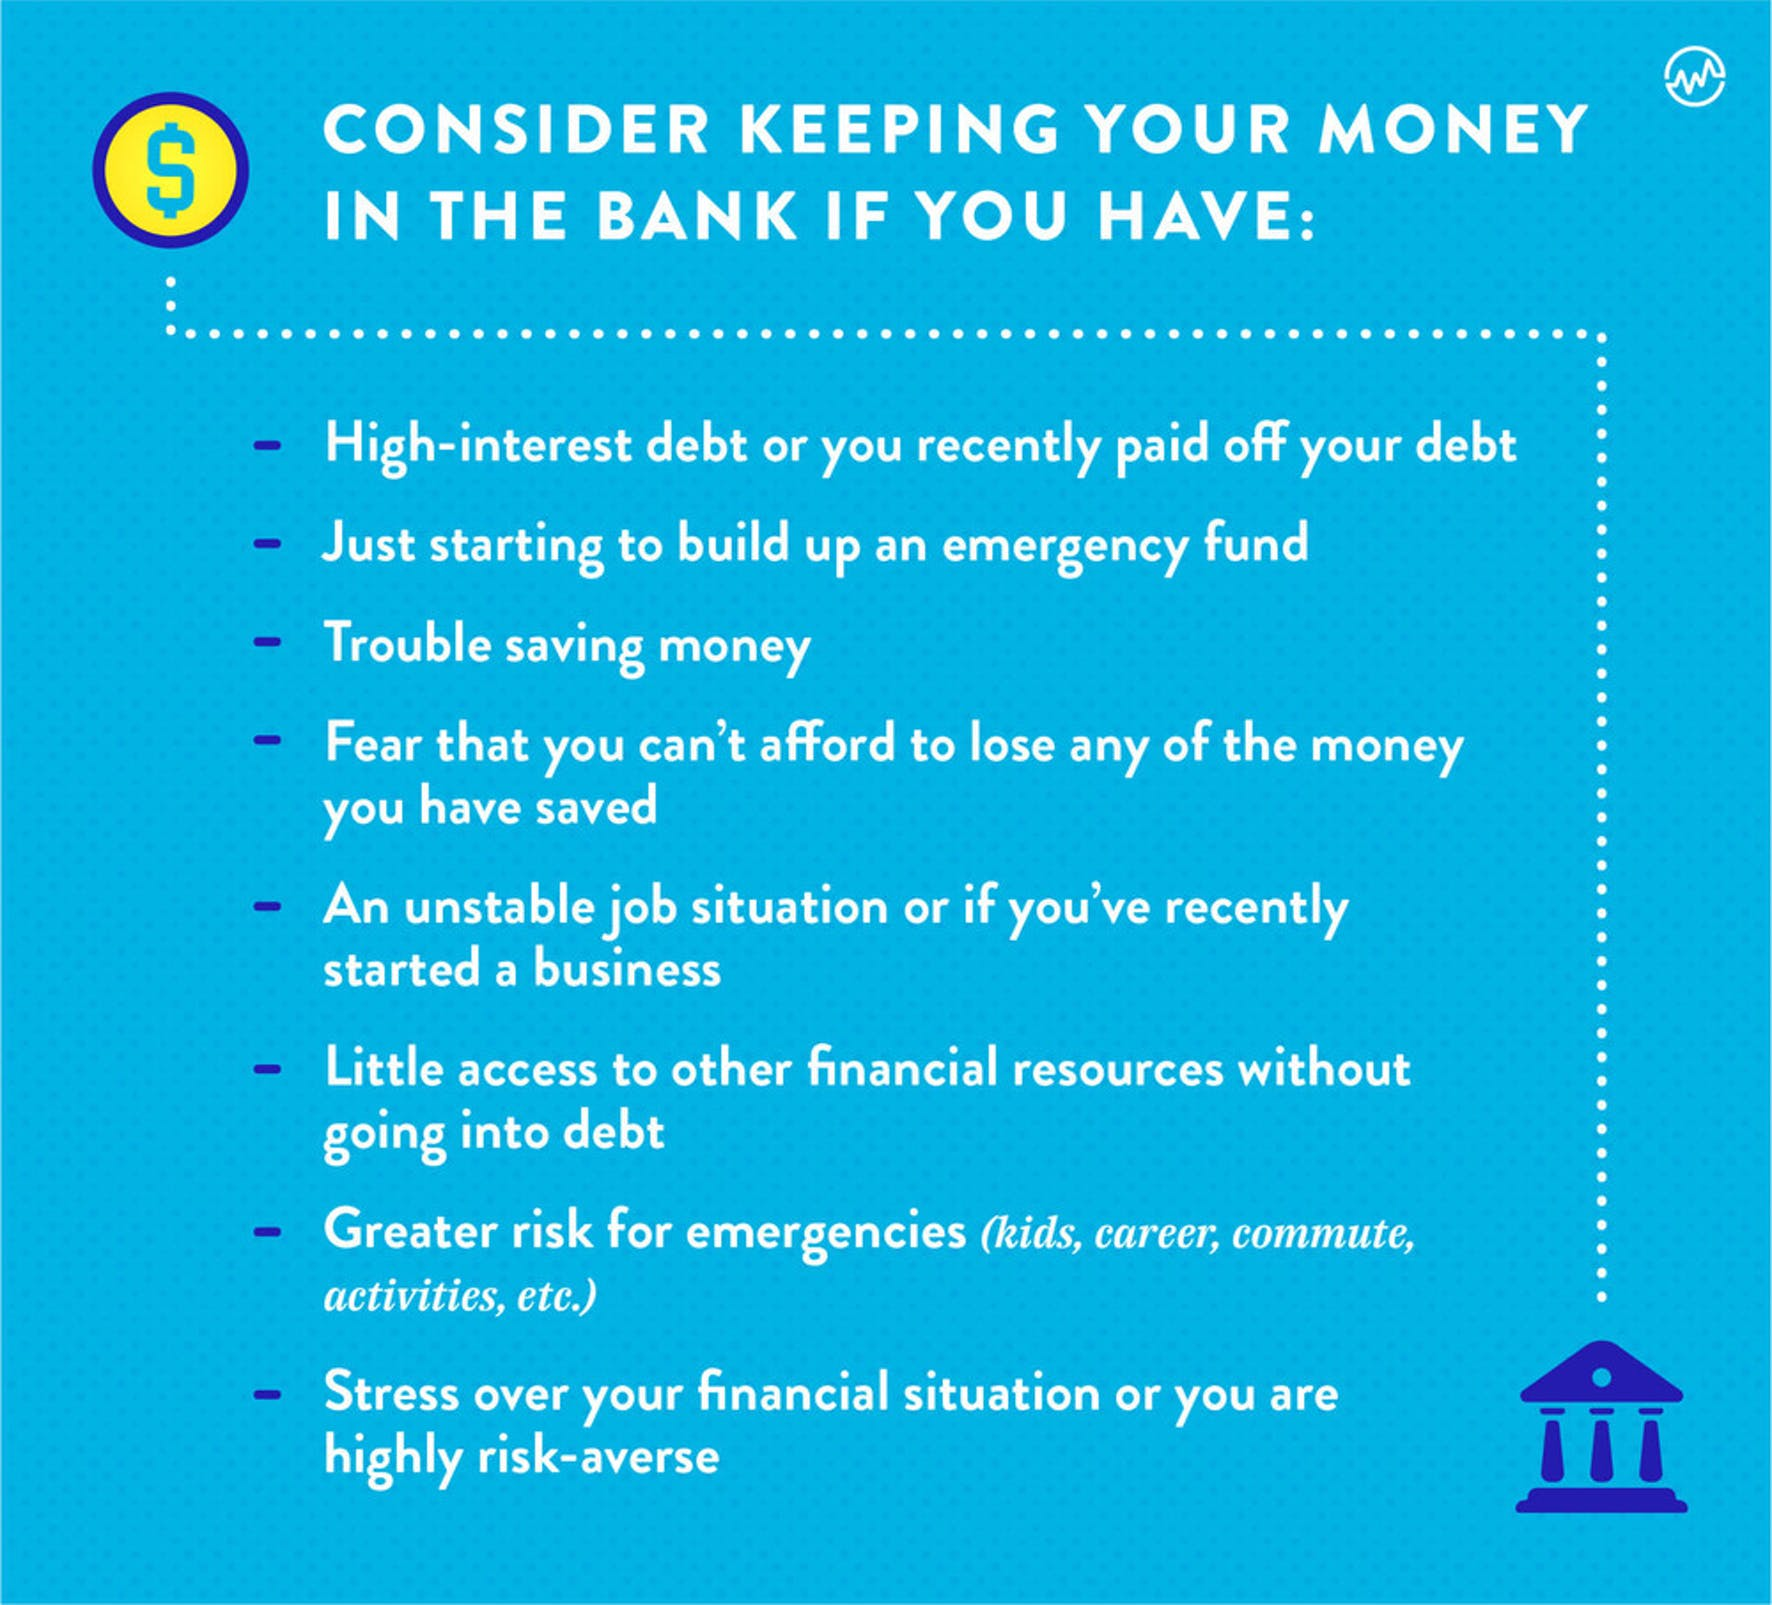 Consider keeping your money in the bank if you have the following graphic